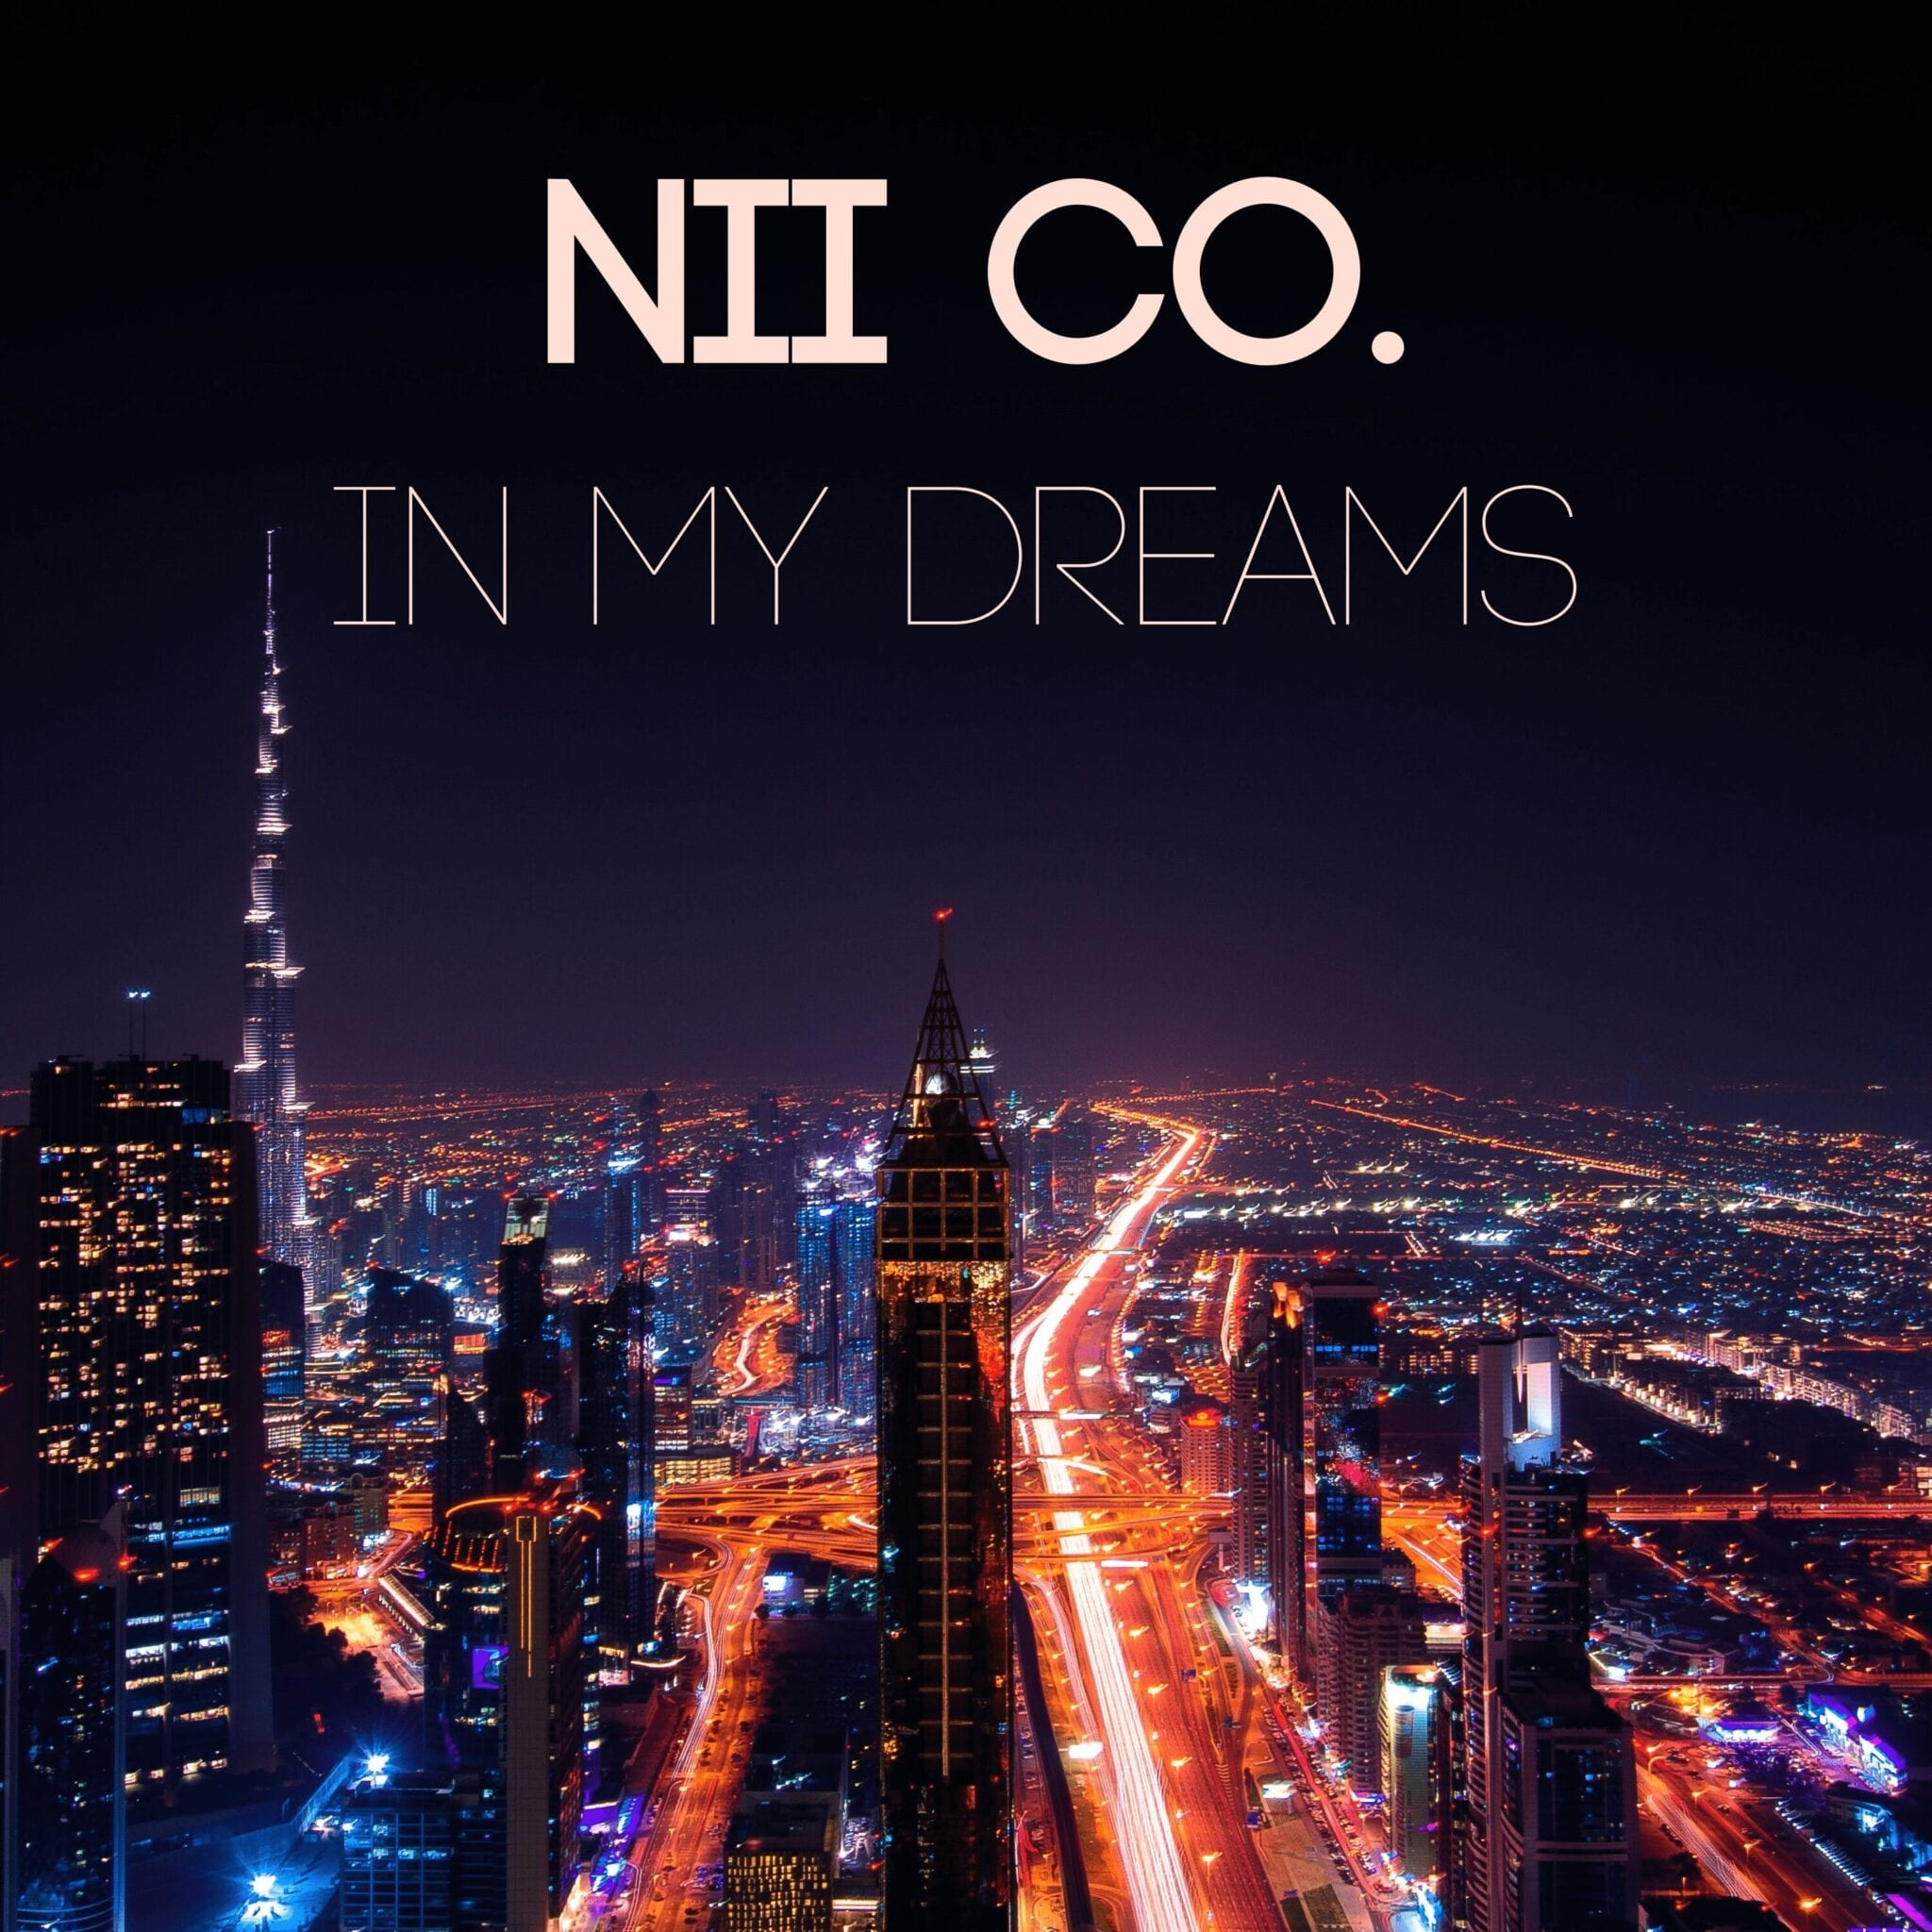 New Electronic Pop In My Dreams from Nii Co.